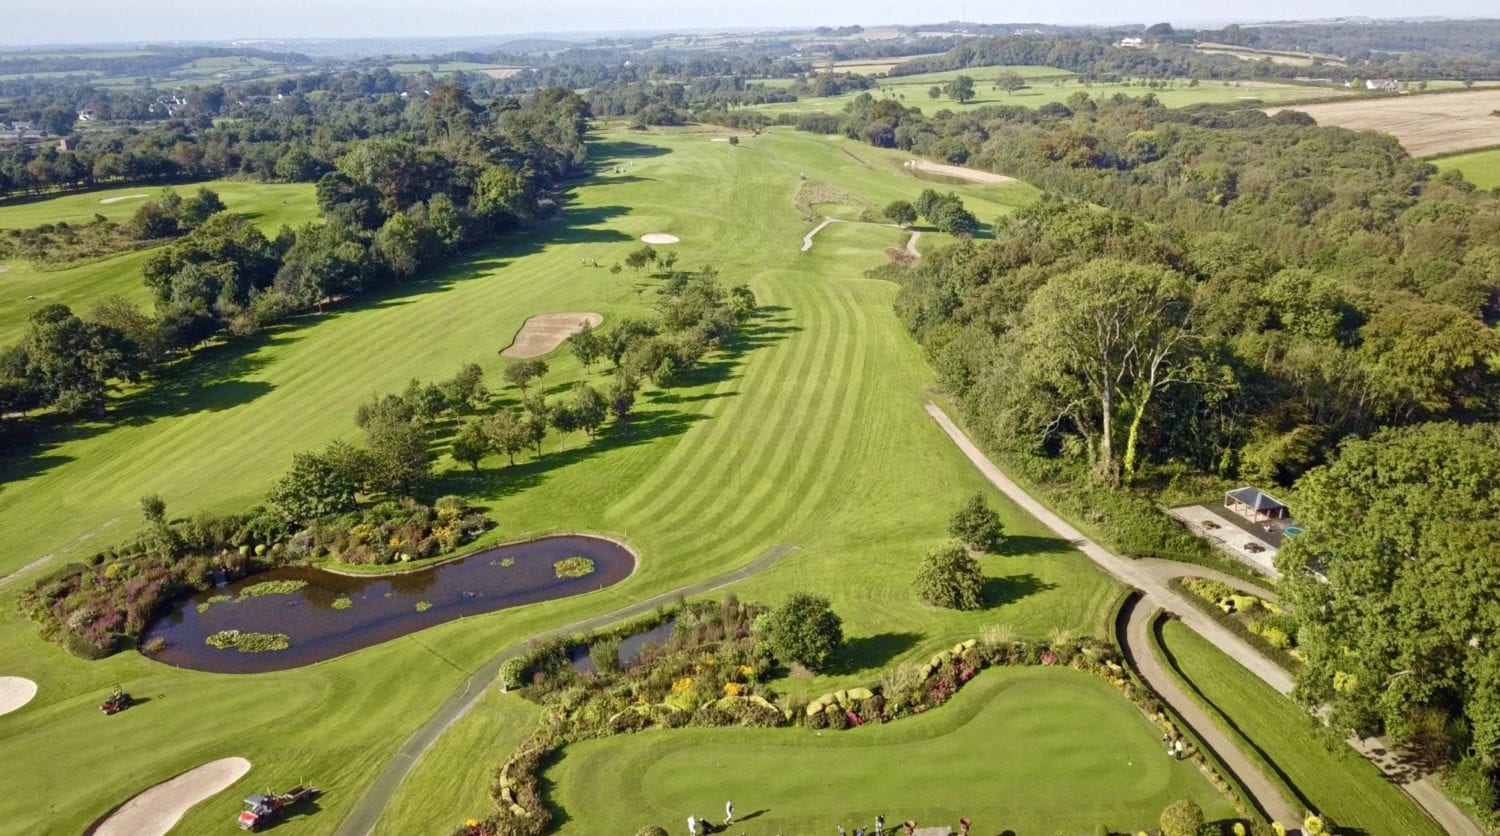 Golf resort with accommodation and restaurant - birds eye view of Cottrell golf resort